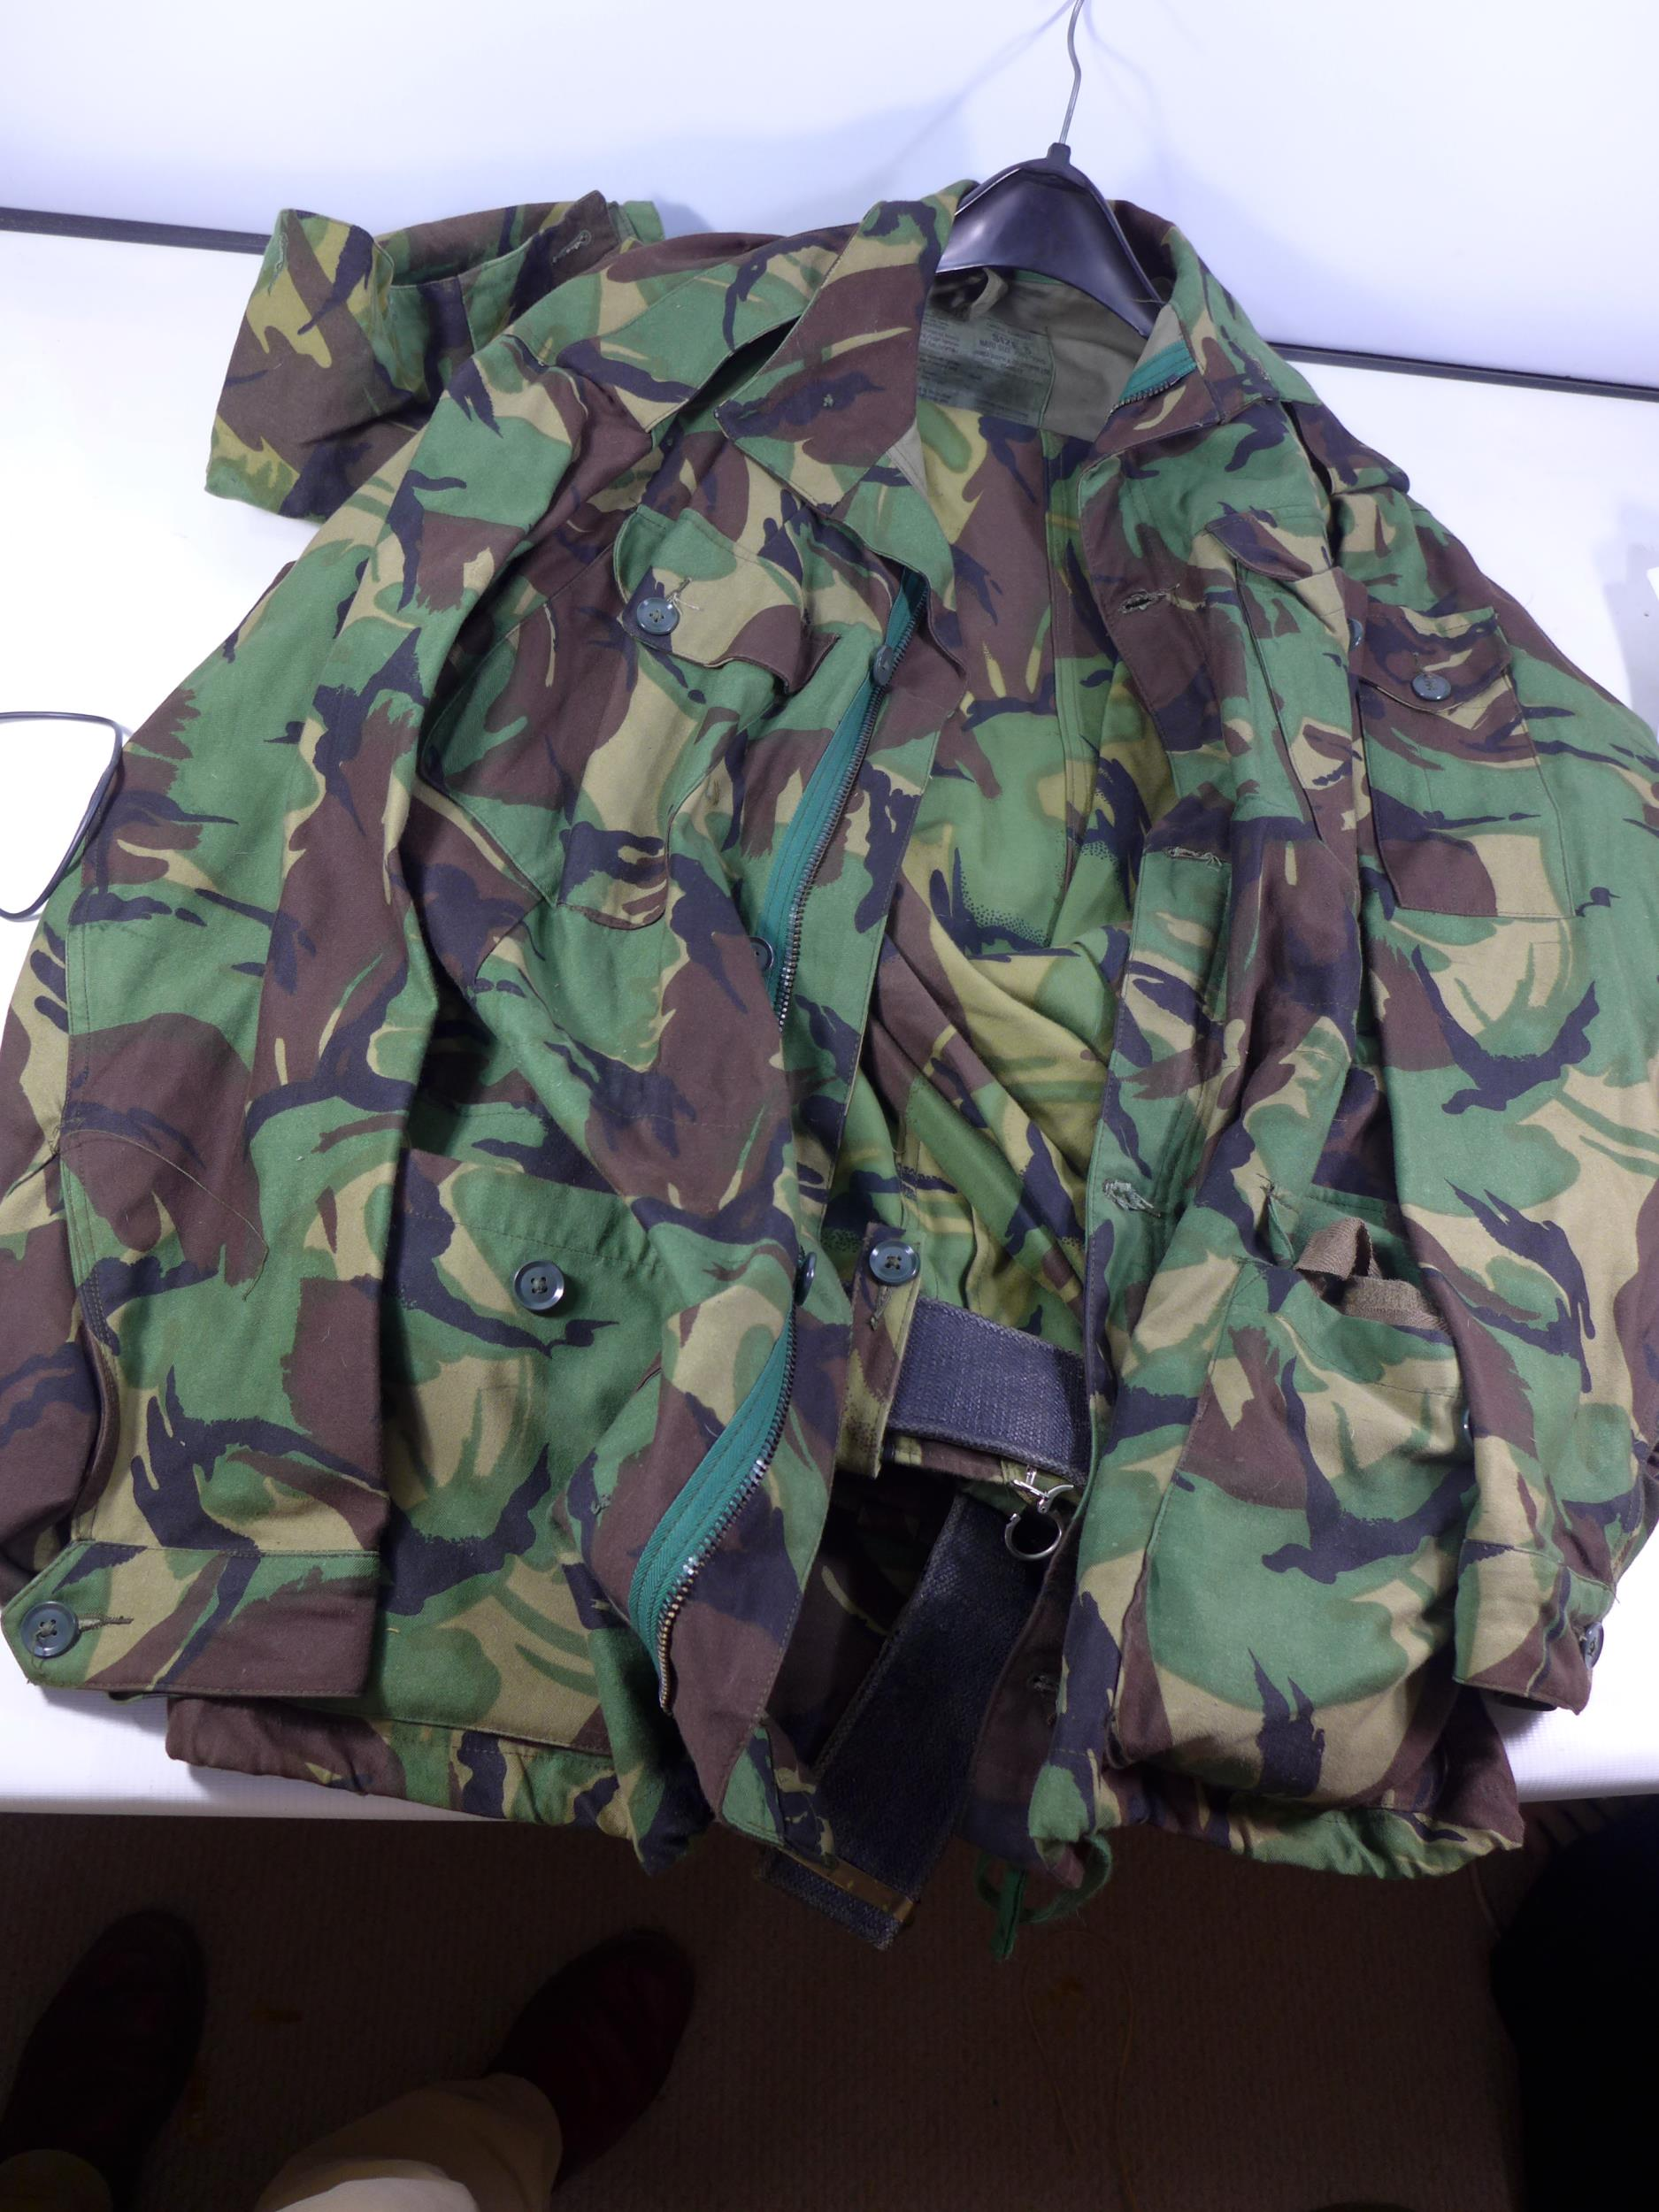 A CAMOUFLAGE SMOCK COMBAT UNIFORM, SIZE S COMPRISING OF A COAT AND TROUSERS, HAT ETC ALSO A